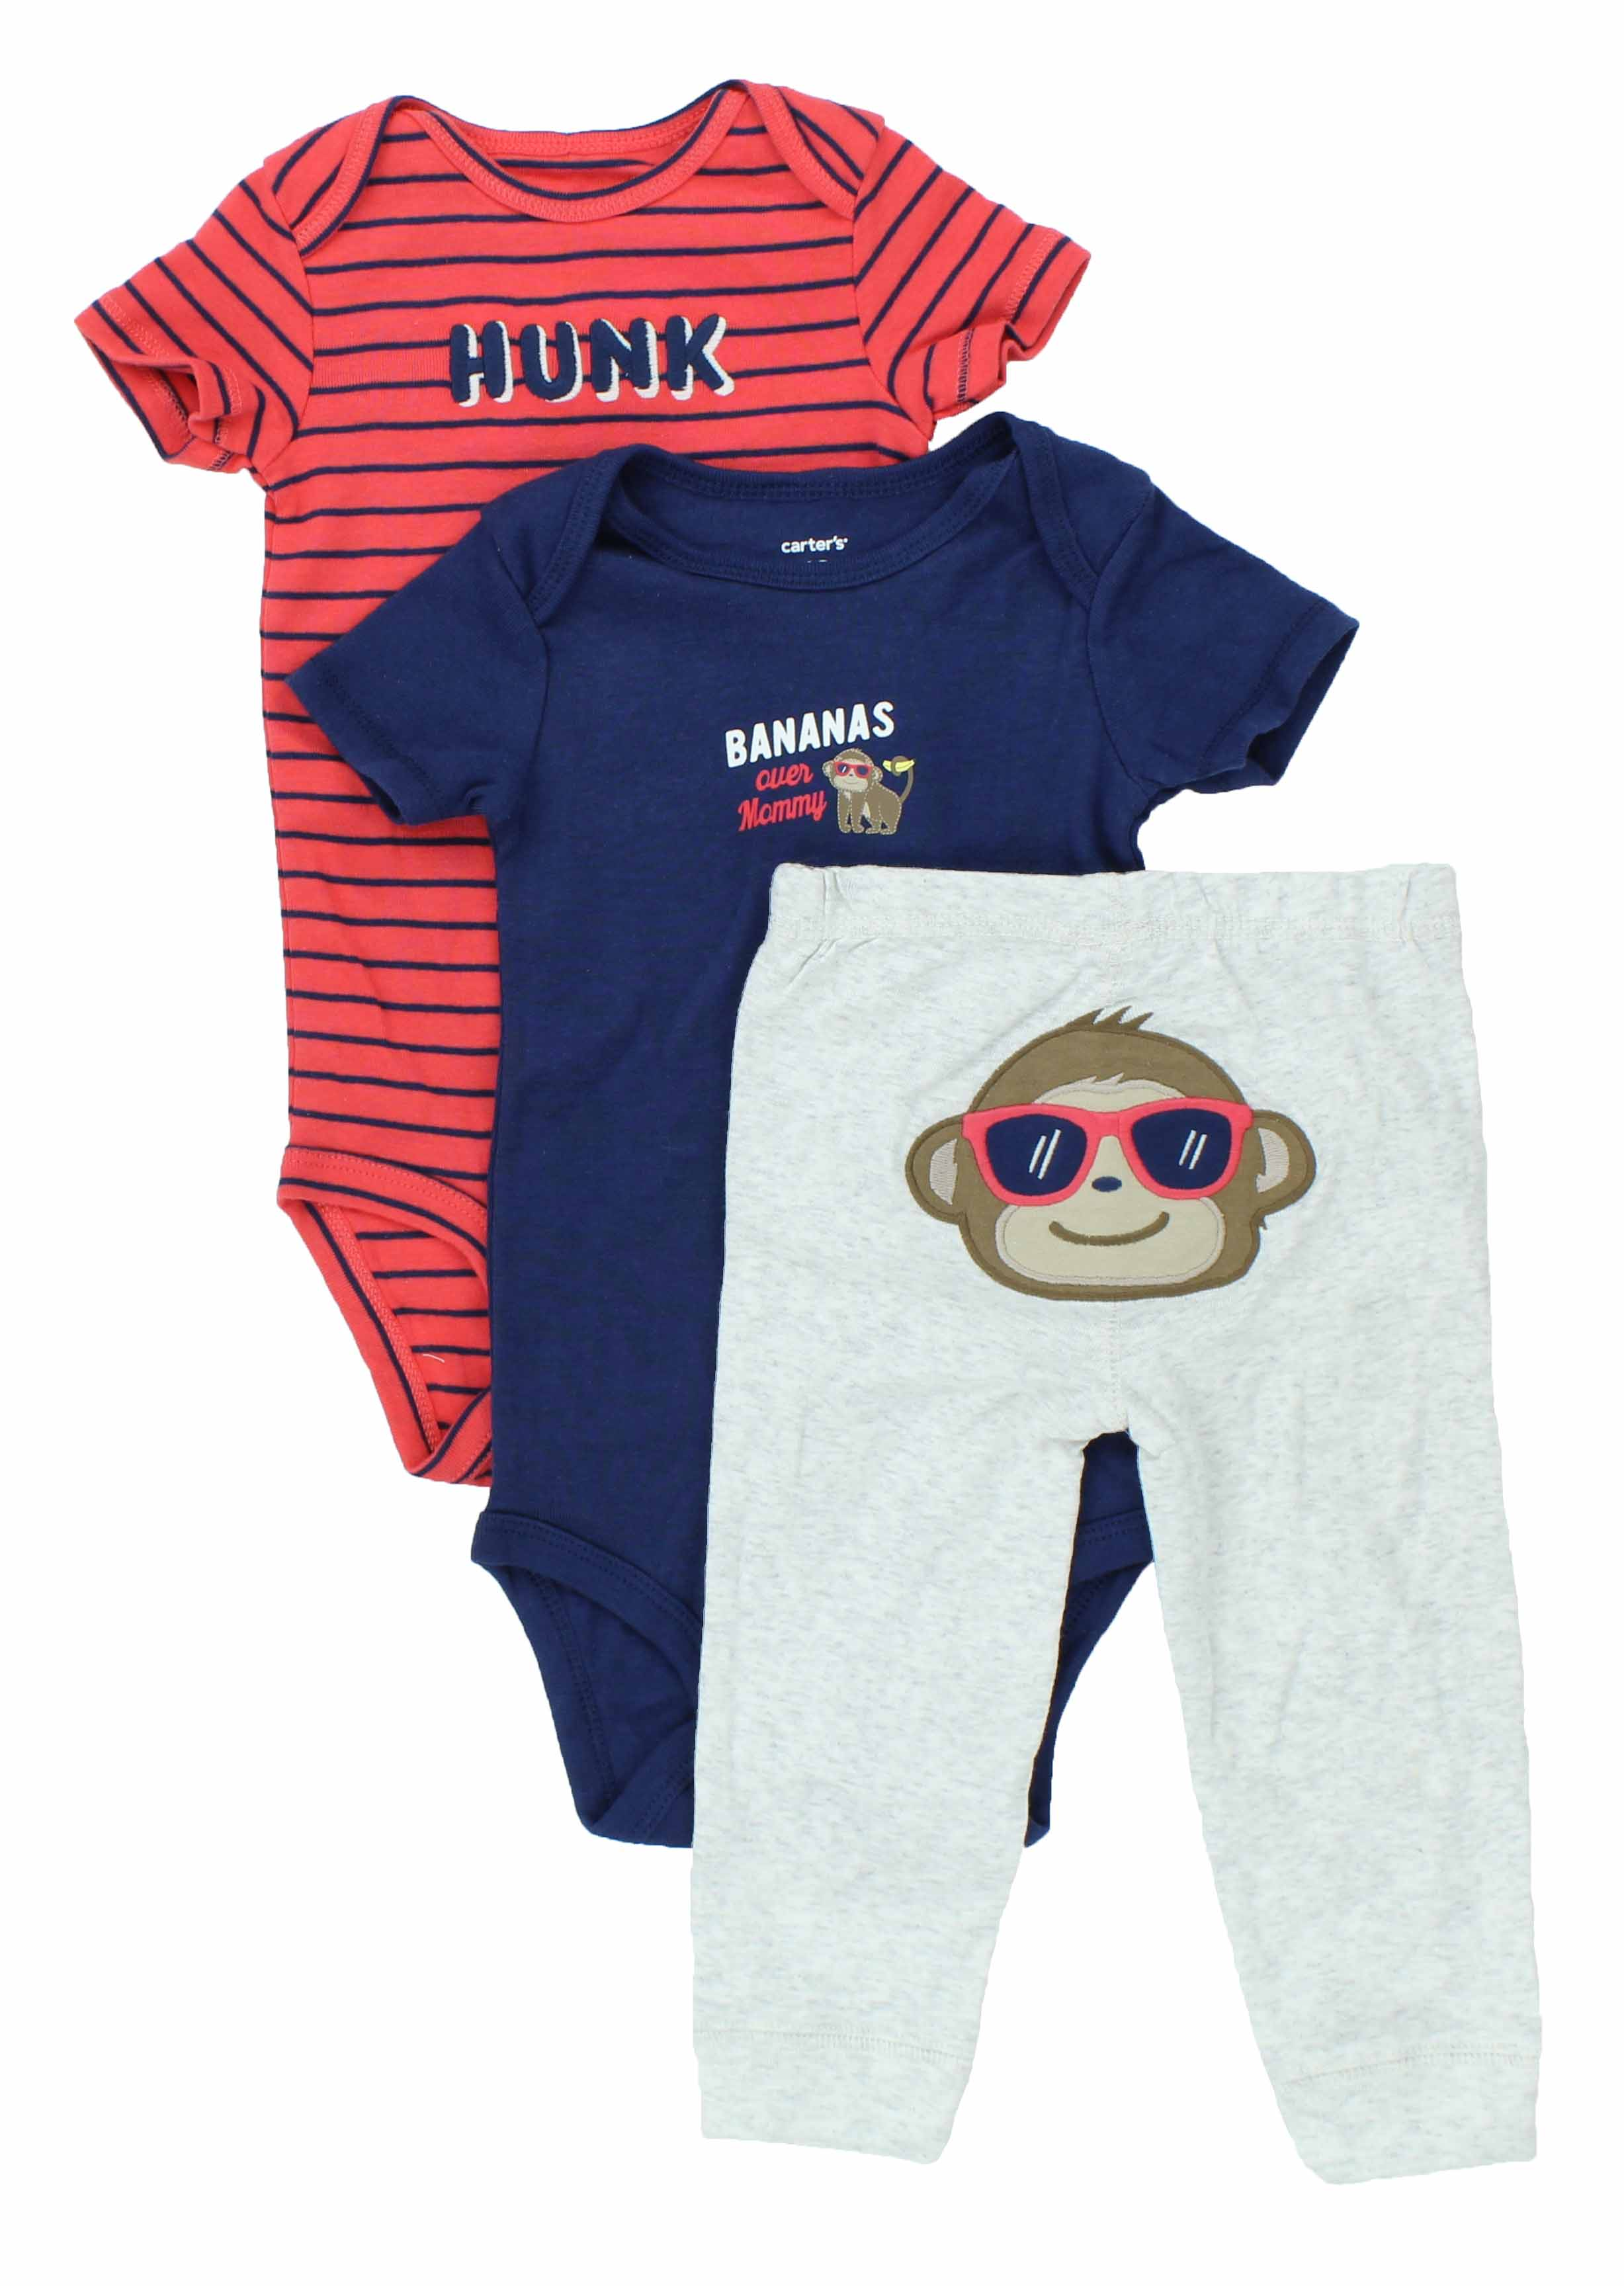 Carters Baby Boys 3 Piece Matching Outfit Set 2 Onsies 1 Pant Pieces Orange Mickey Mouse